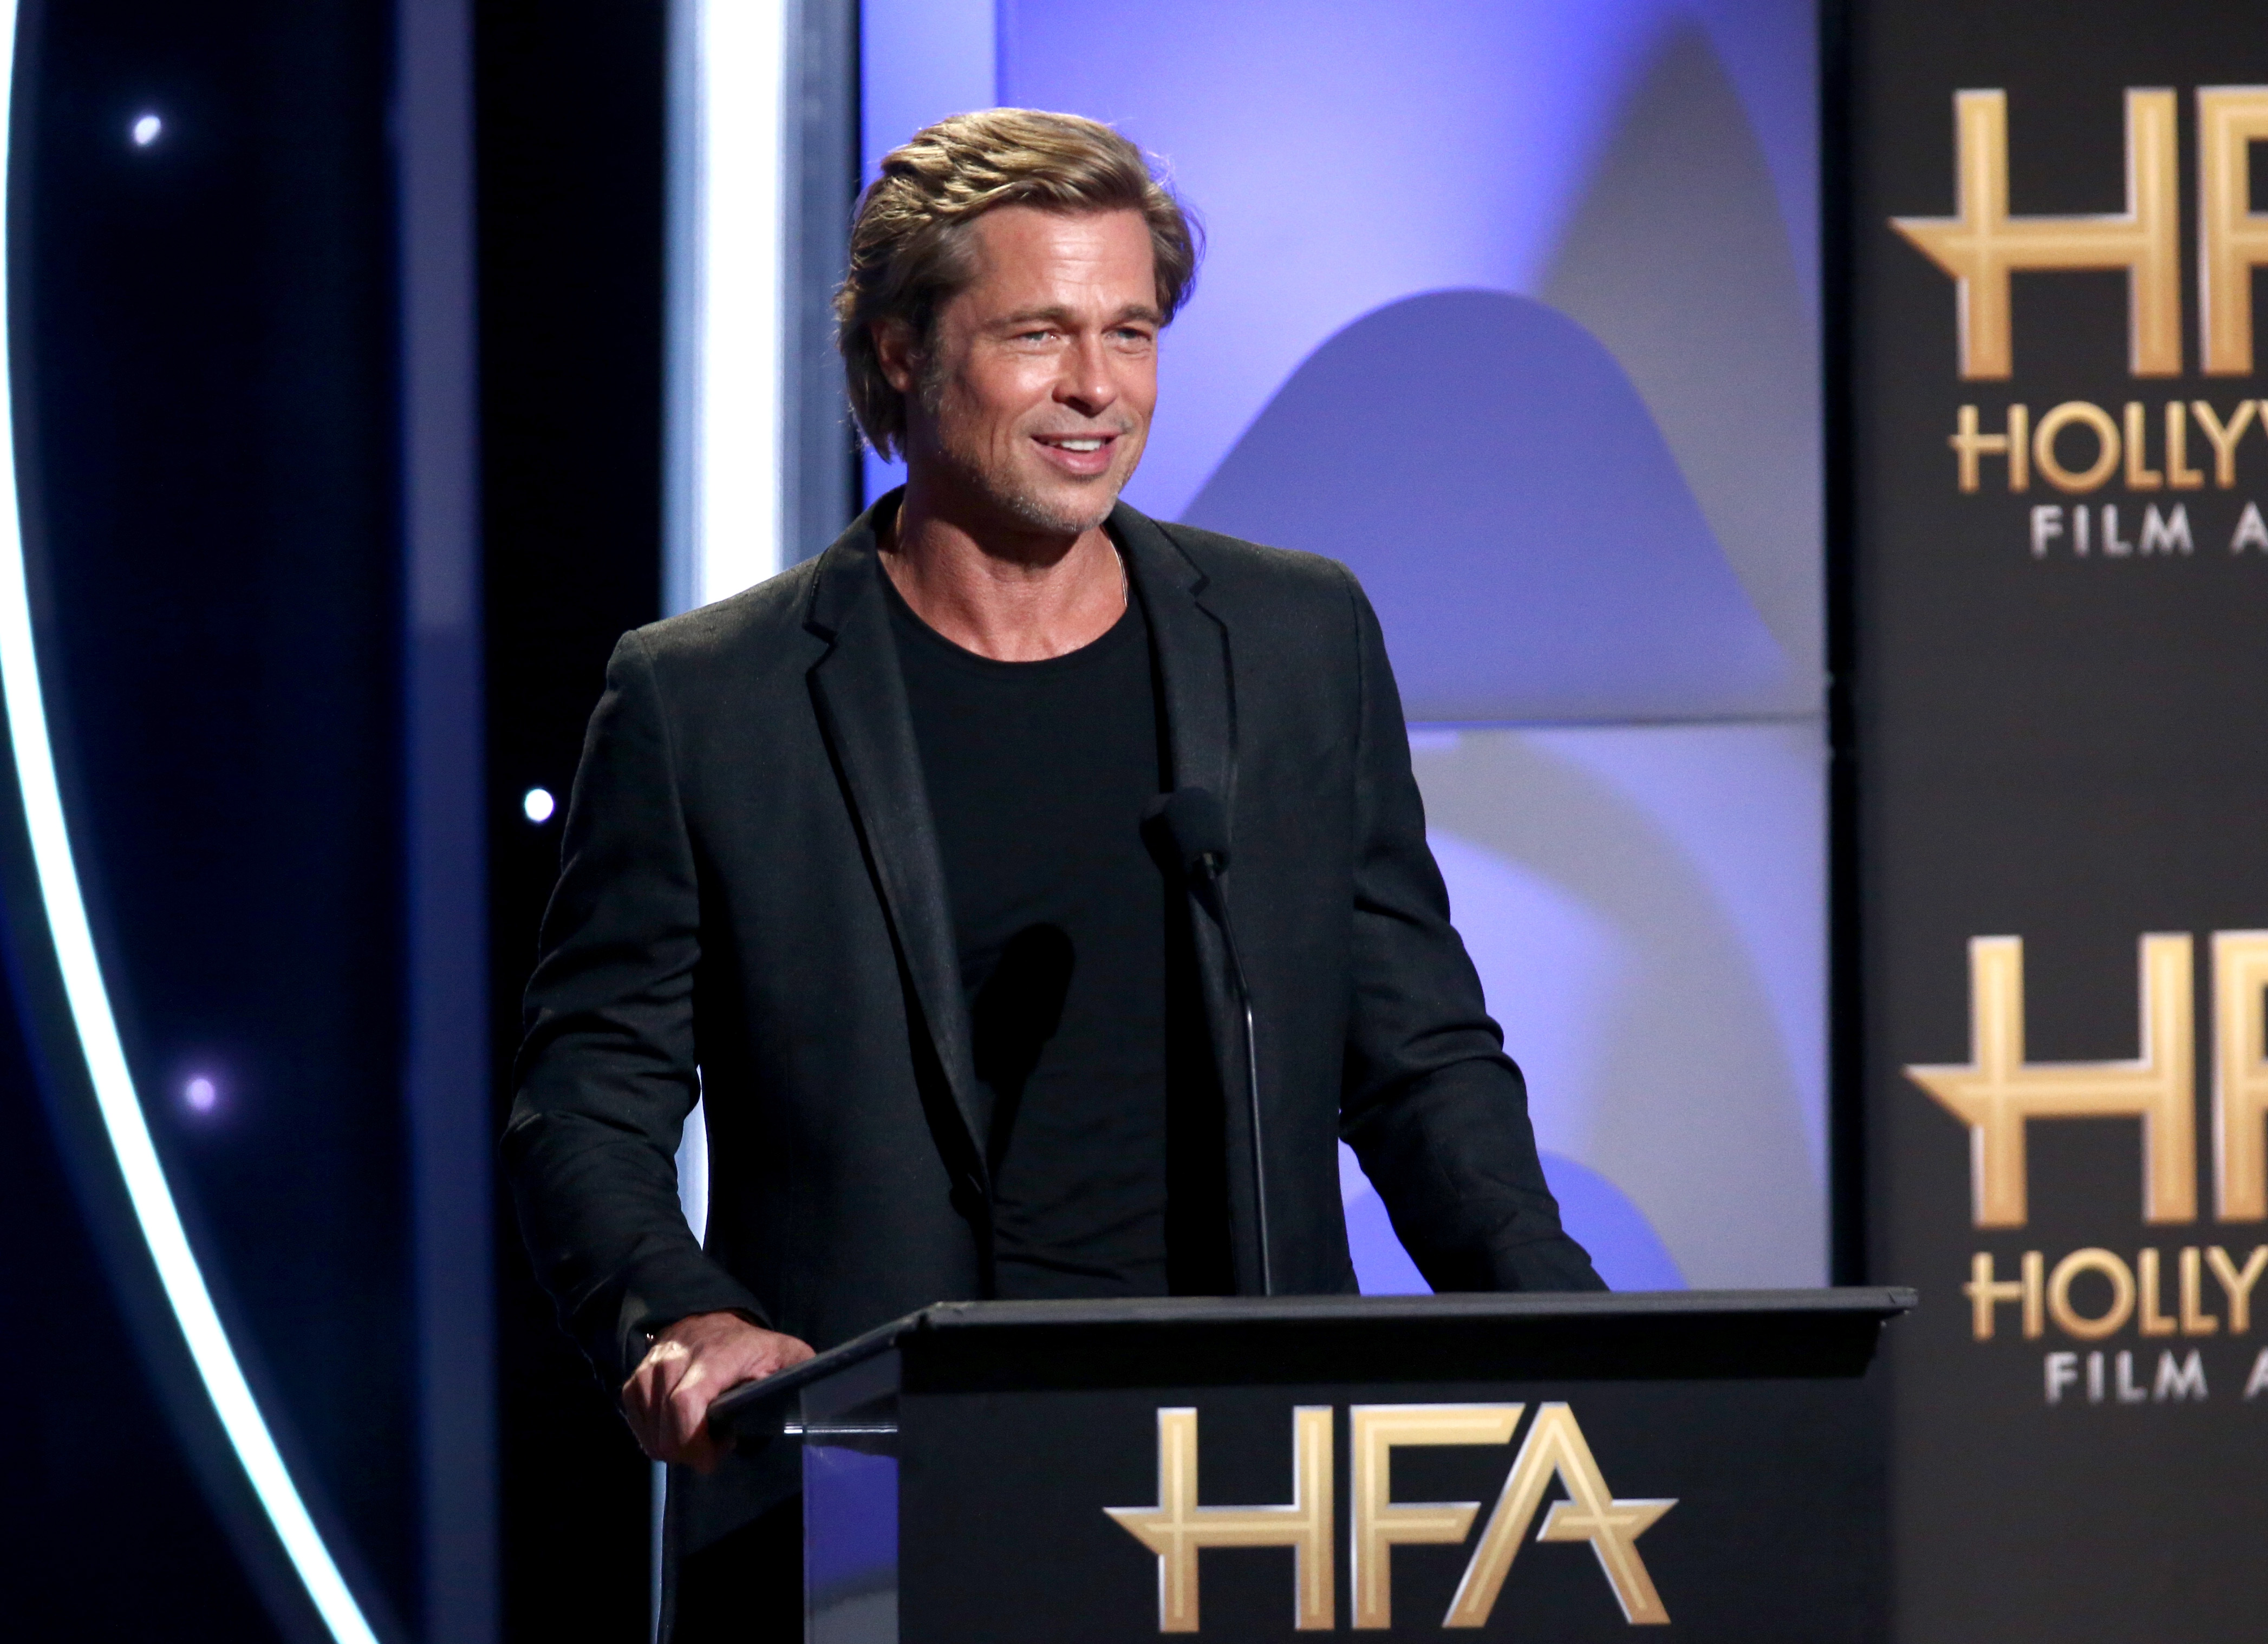 Brad Pitt speaks onstage during the 22nd Annual Hollywood Film Awards at The Beverly Hilton Hotel on November 4, 2018 in Beverly Hills, California. Source: Getty